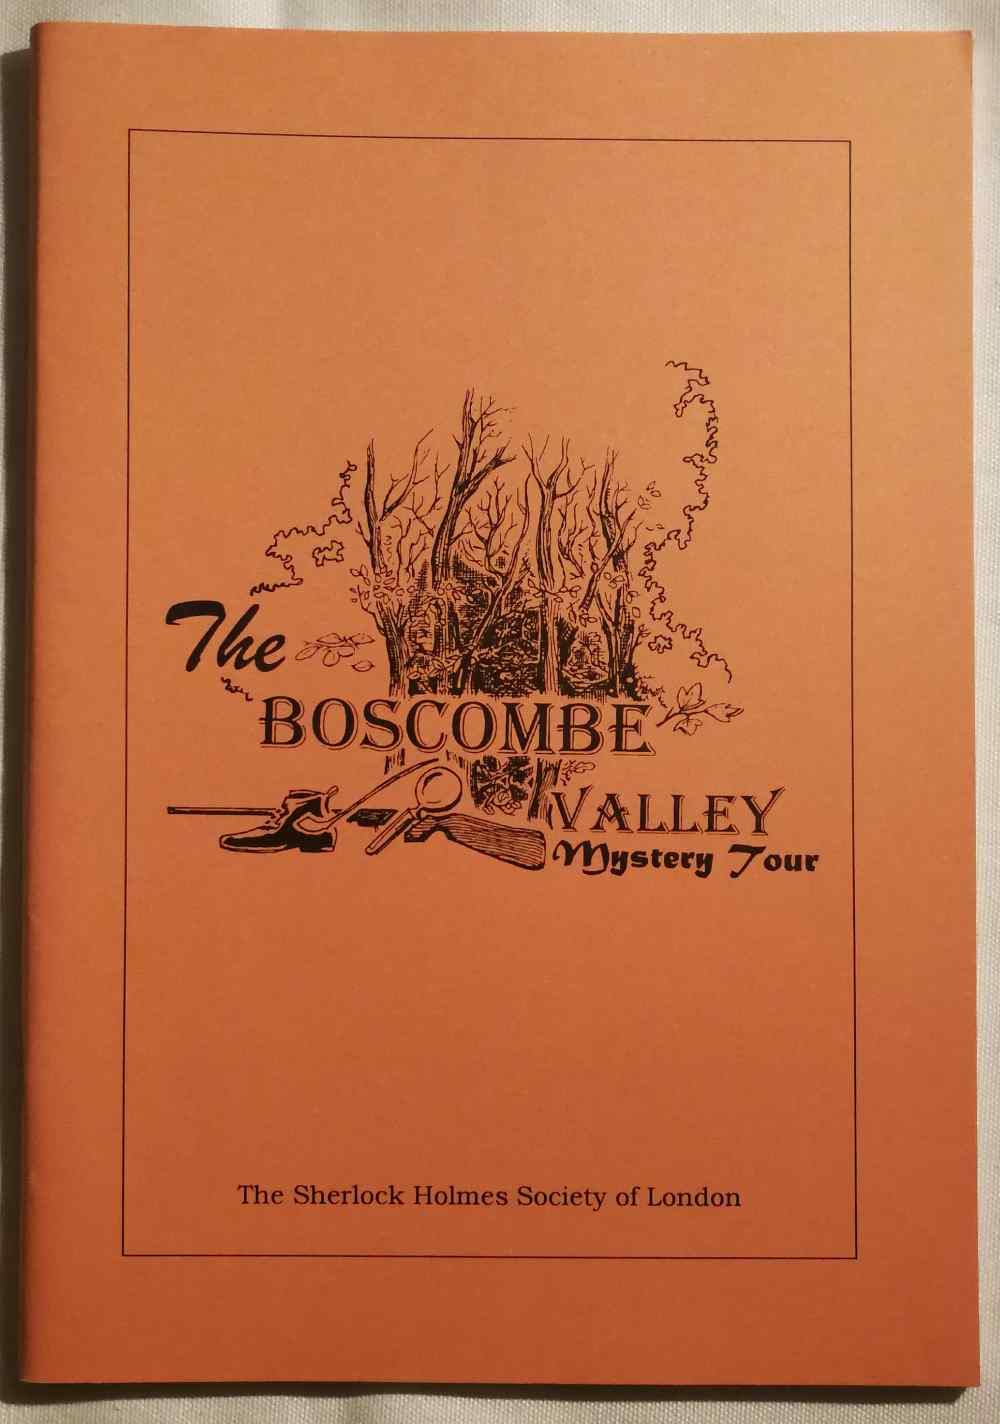 The Boscombe Valley mystery tour : a light hearted view at the west : the Sherlock Holmes Society of London 4-6 June 1999